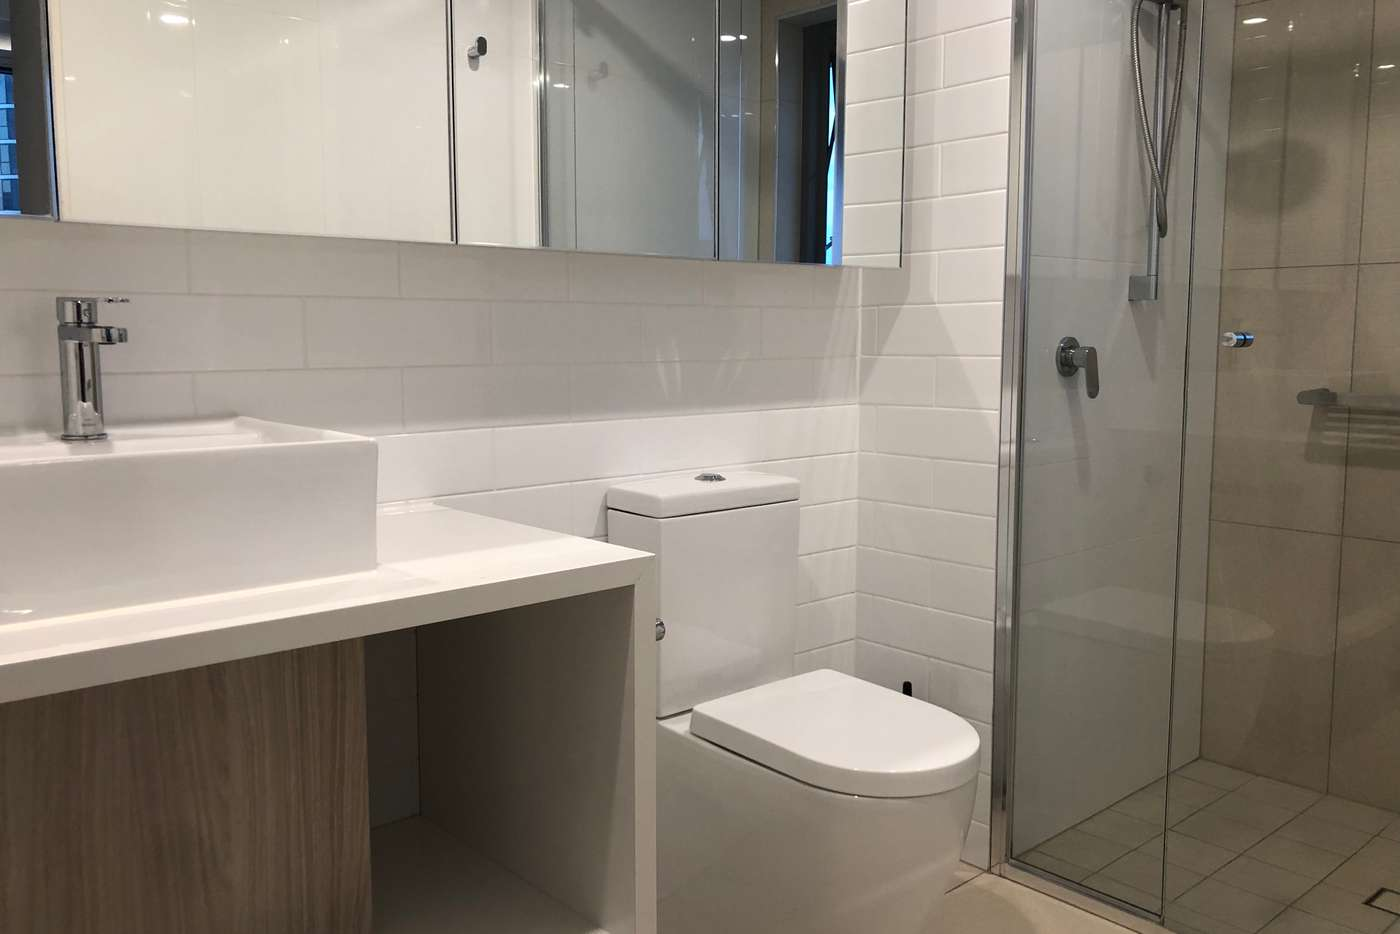 Seventh view of Homely apartment listing, 504/35 Hercules Street, Hamilton QLD 4007